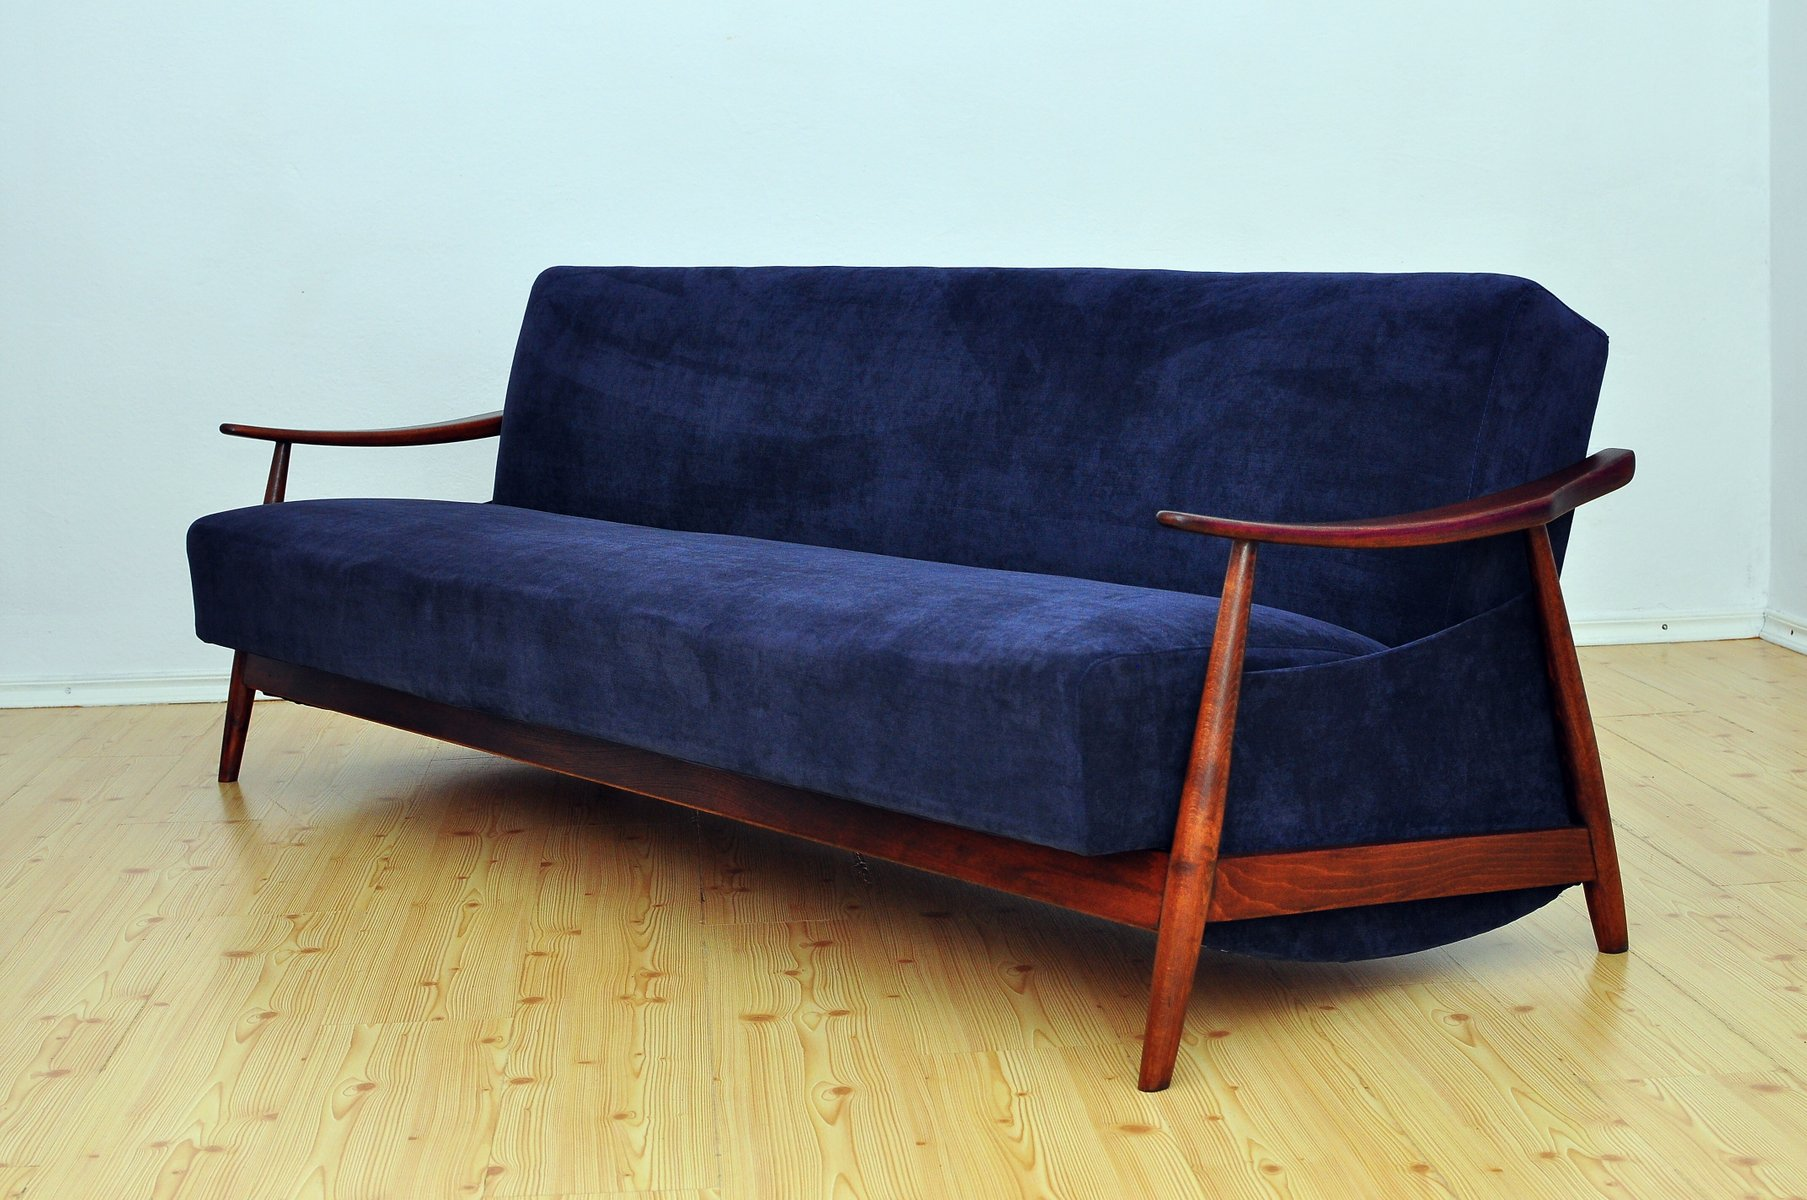 Marvelous Mid Century Sofa Bed, 1960s